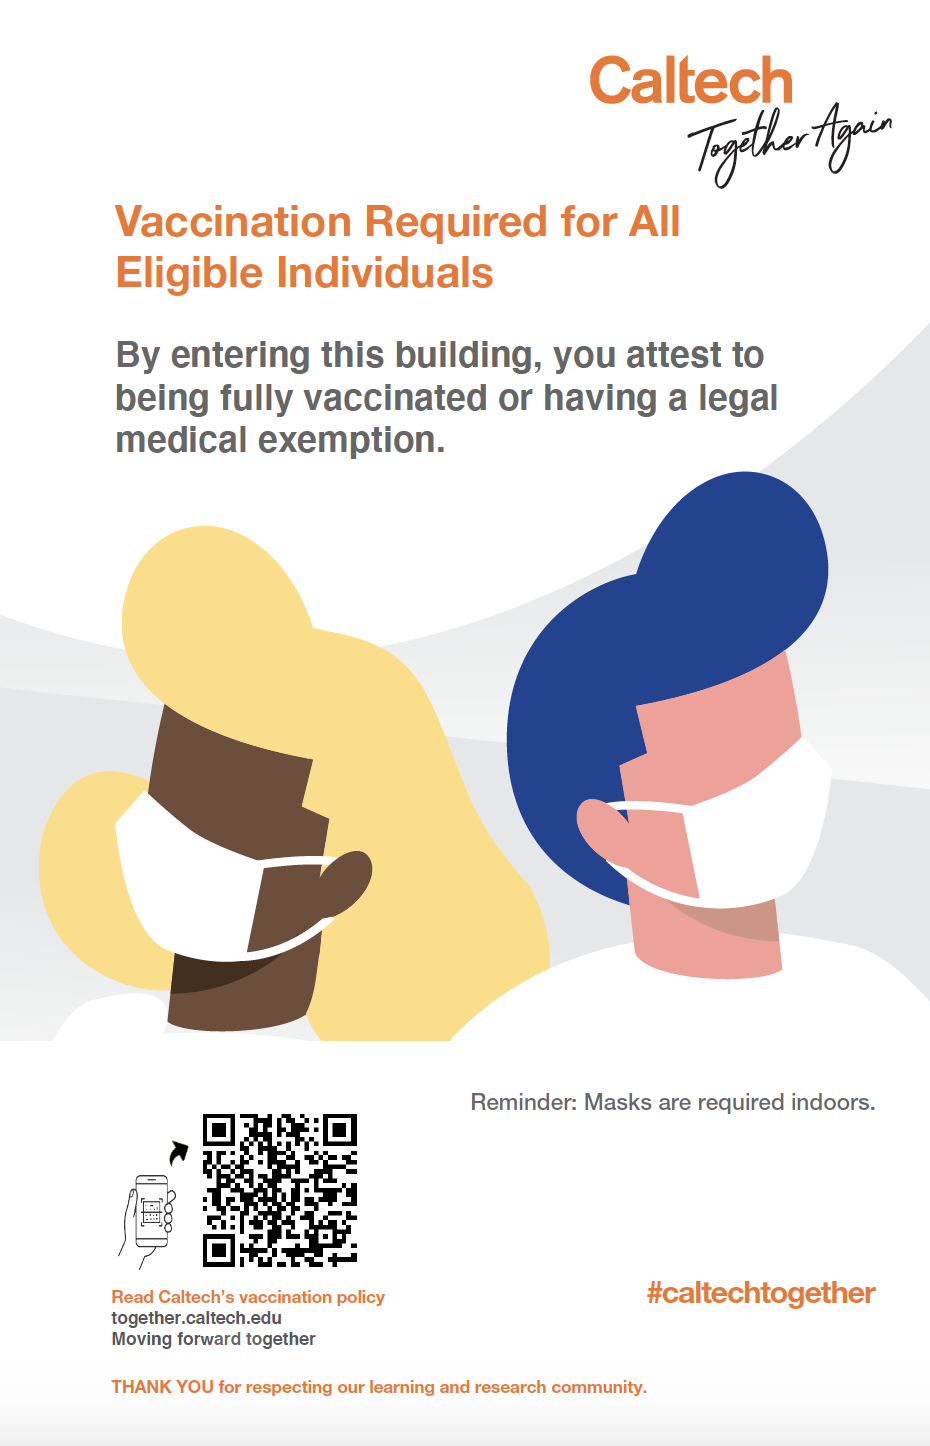 Vaccination Required For All Poster